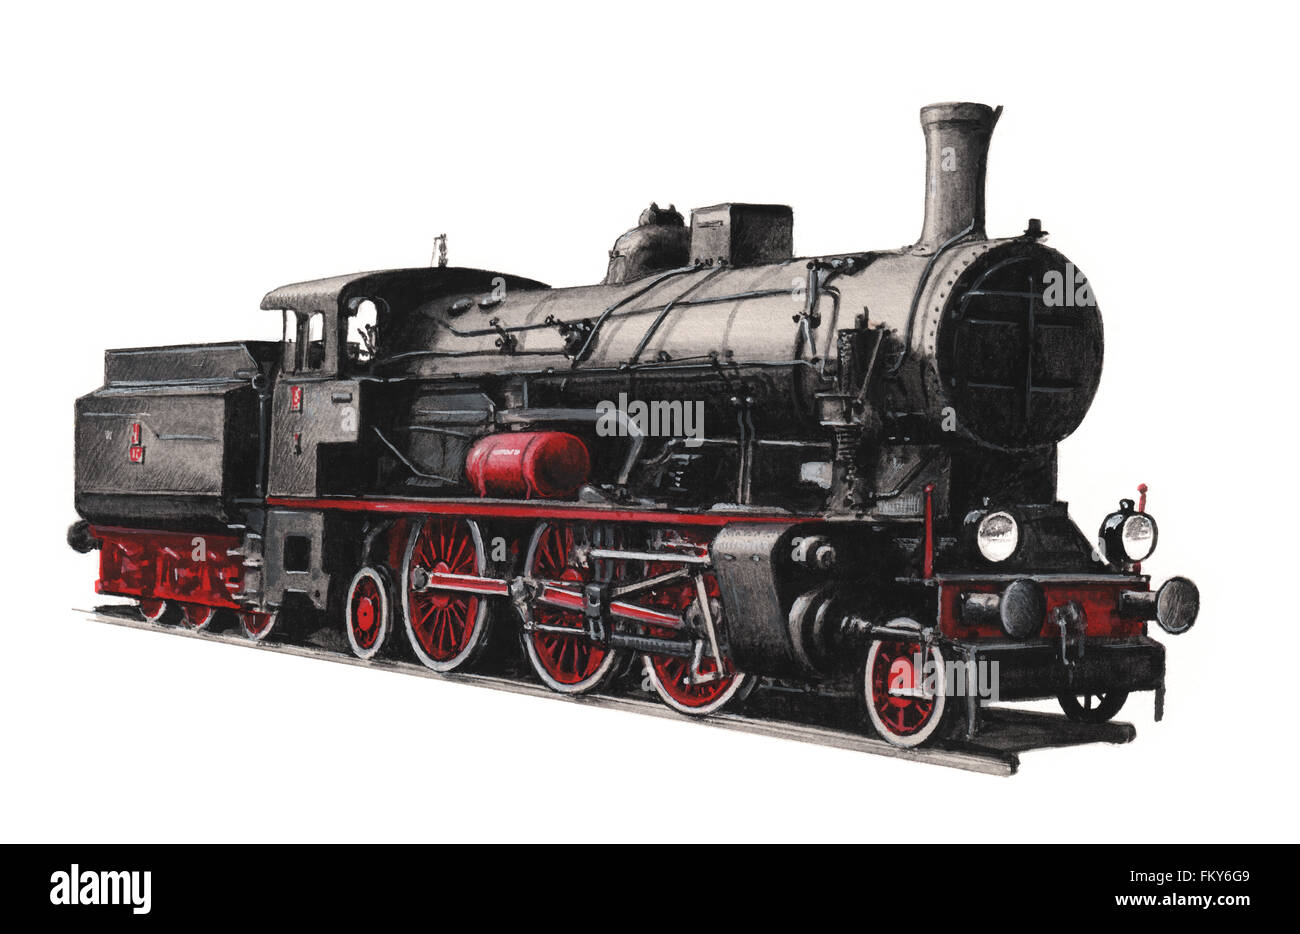 Illustration of a steam locomotive OL12 - Stock Image